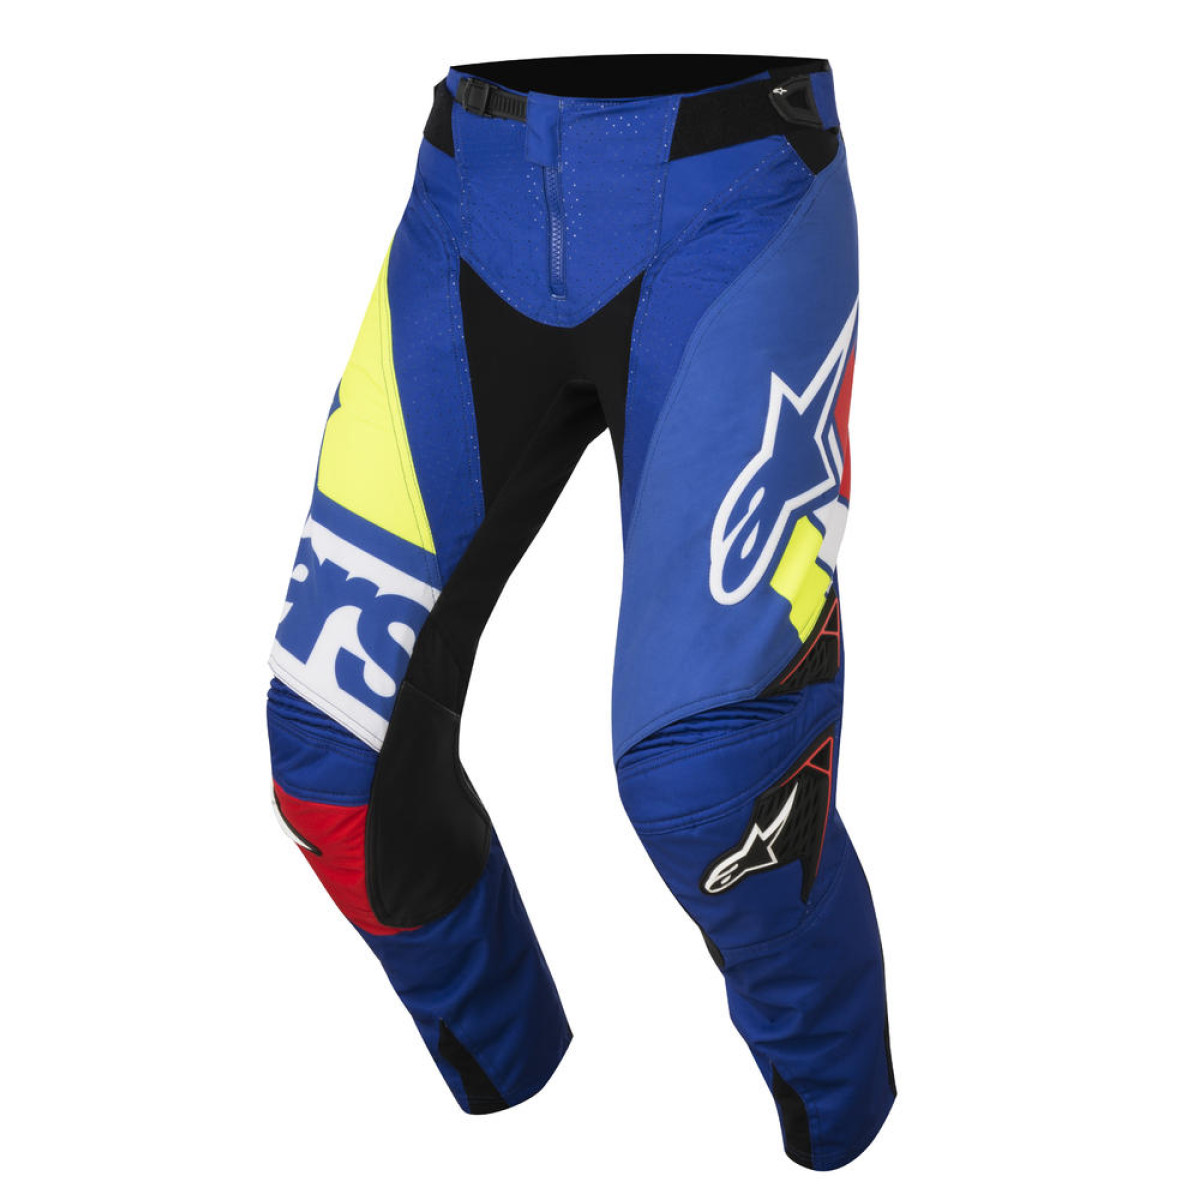 pantalon cross alpinestars techstar factory bleu rouge blanc jaune fluo 2018 crossmoto fr 20. Black Bedroom Furniture Sets. Home Design Ideas